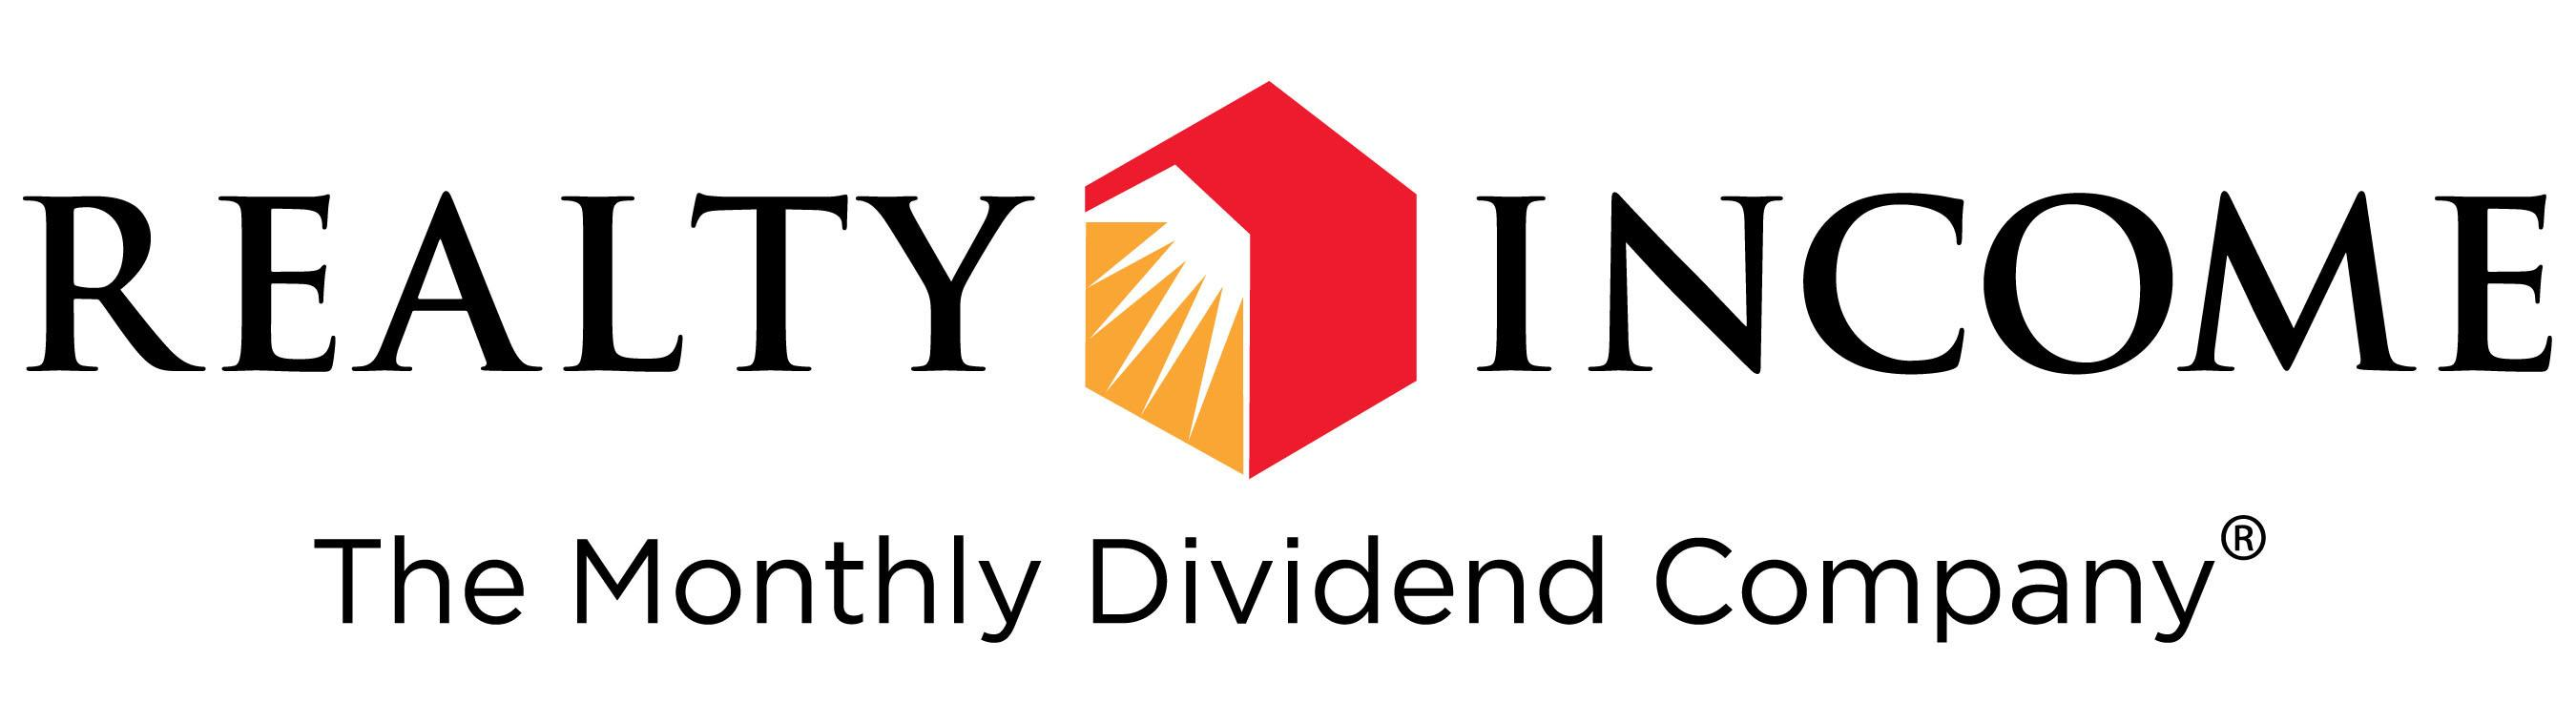 Realty Income Corp Company Logo